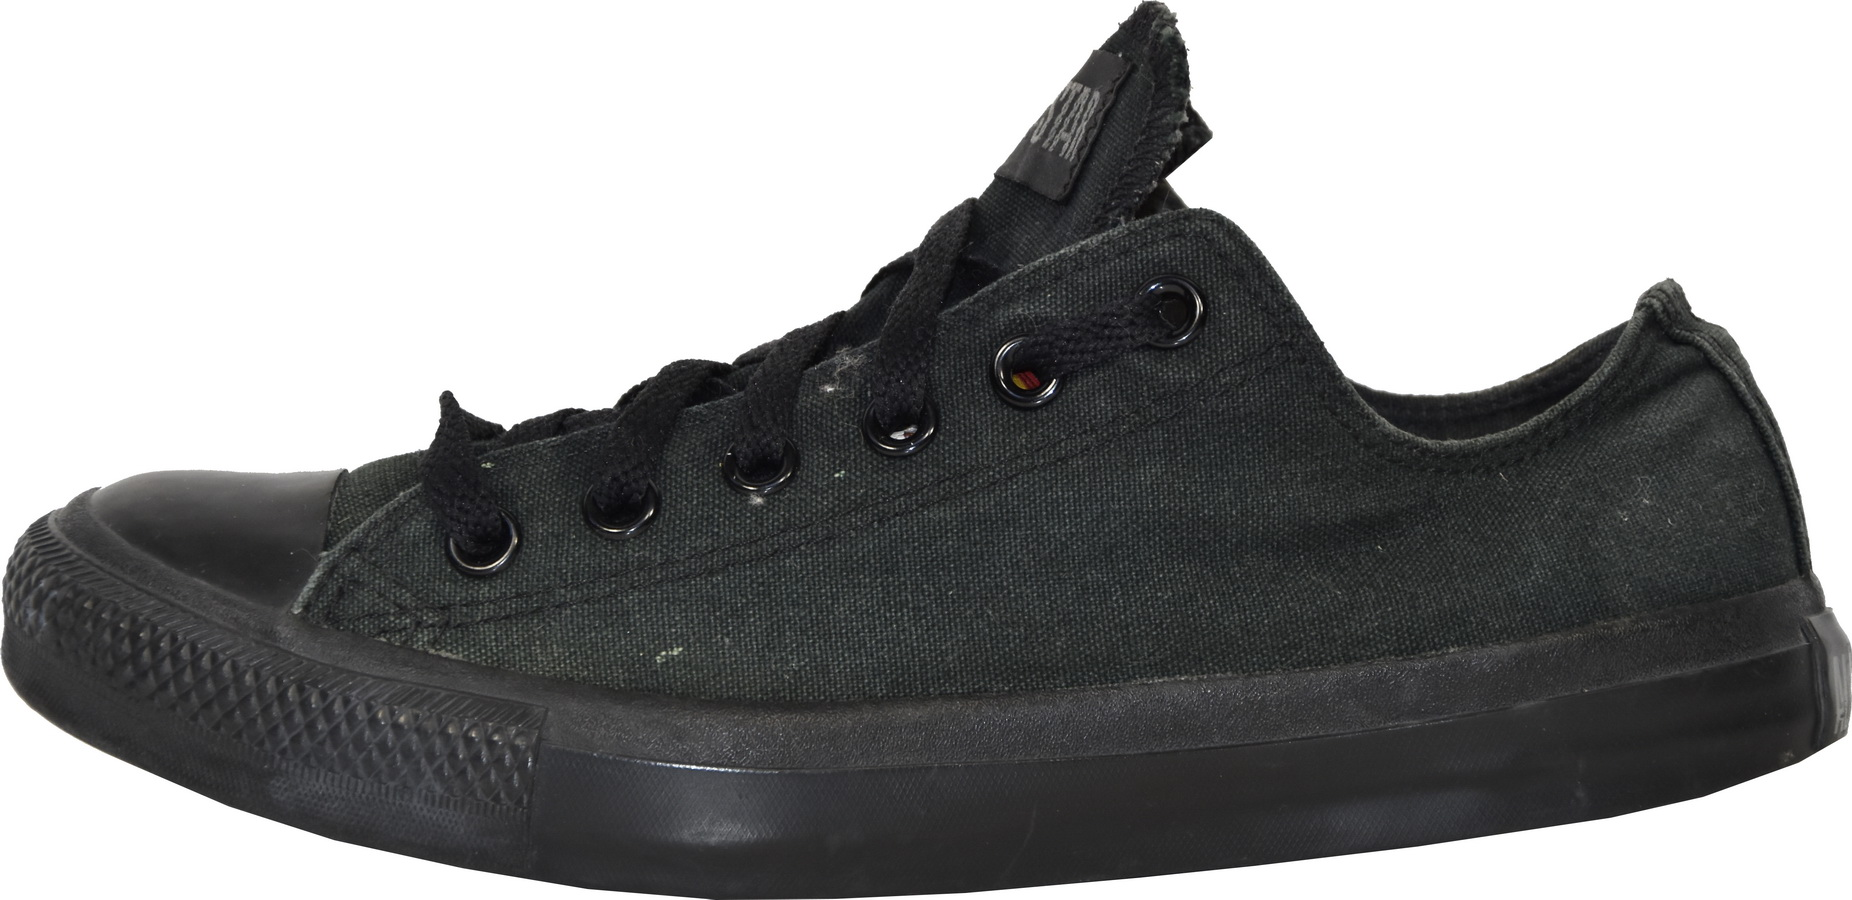 P184 BASKETS CONVERSE CHUCK TAYLOR ALL STAR CORE OX T.34 UK 2 VALEUR 65